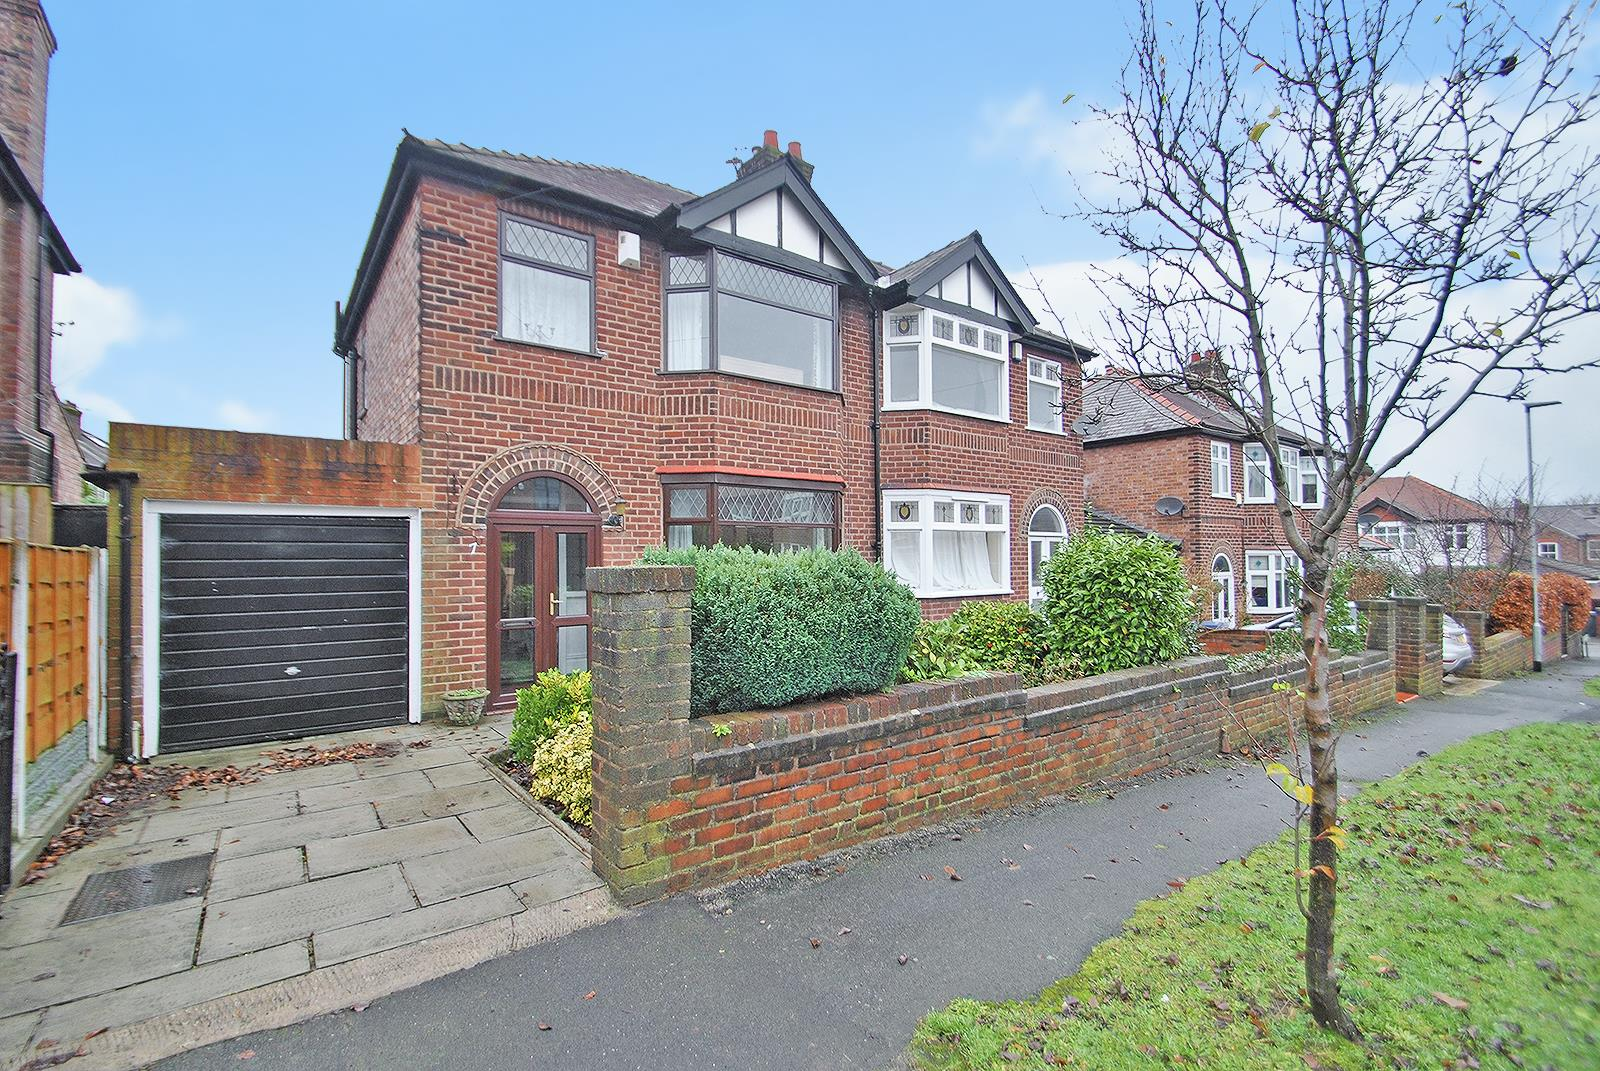 3 Bedrooms Semi Detached House for sale in Osborne Road, WALTON, Warrington, WA4